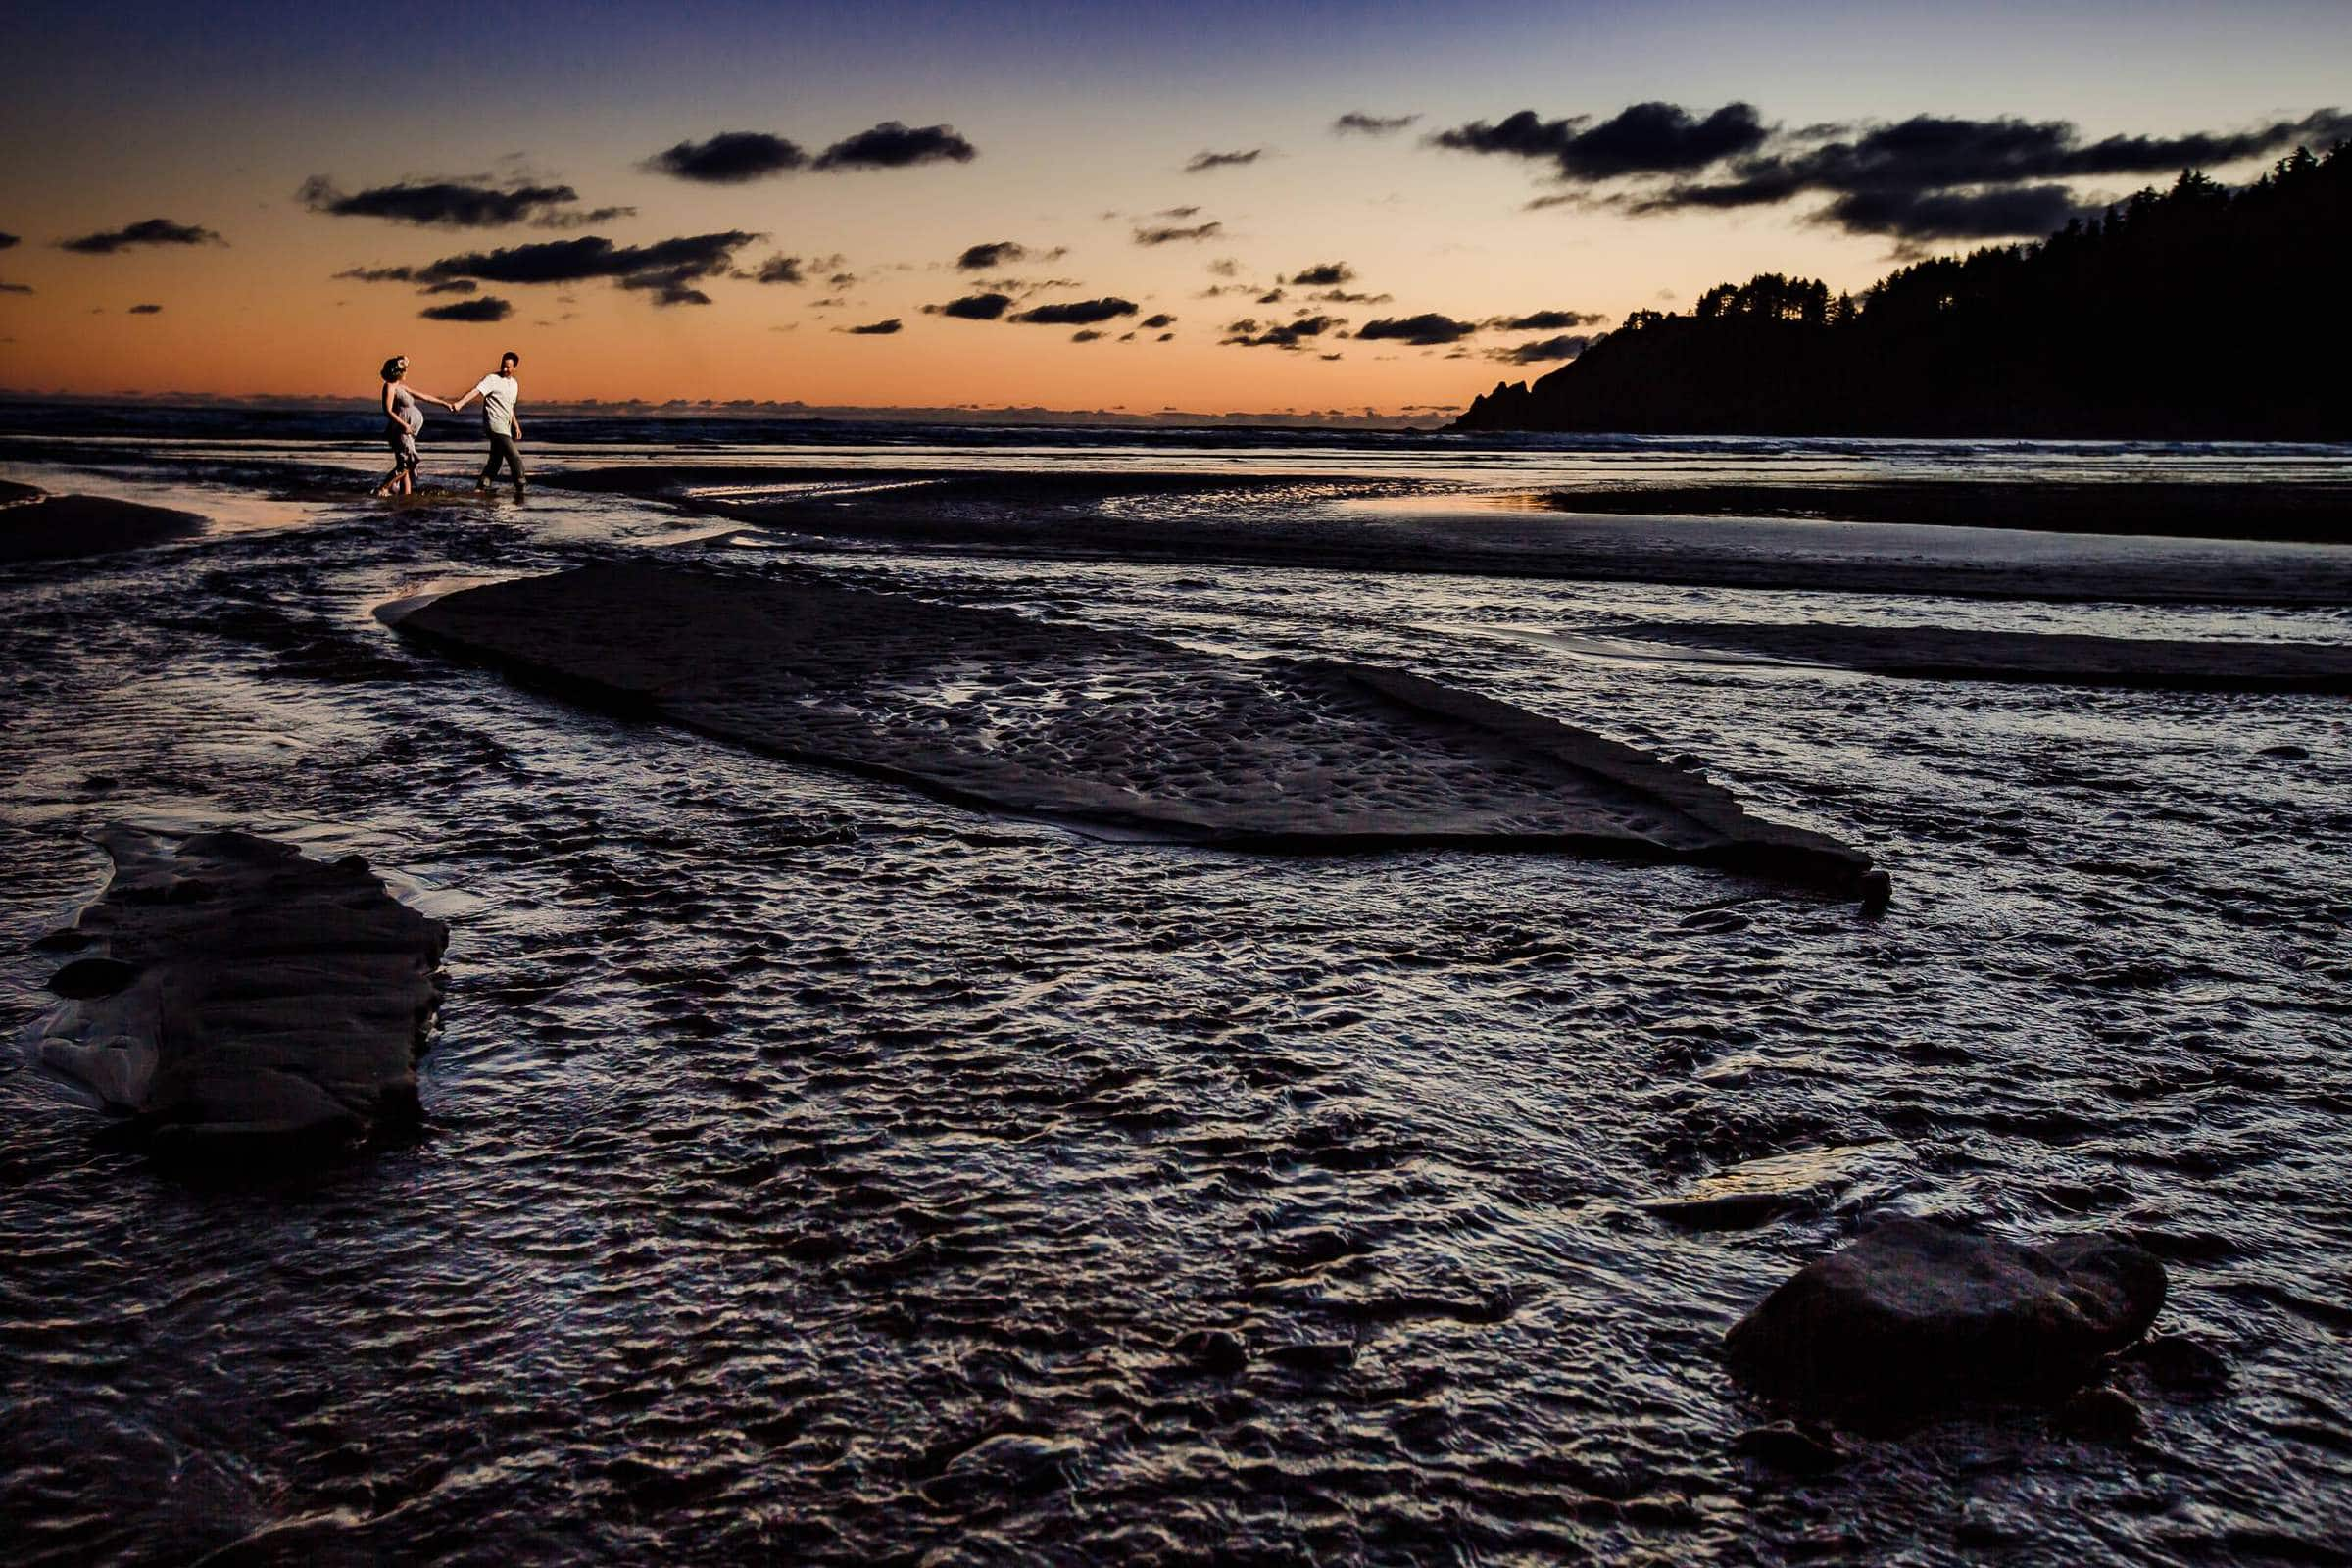 Gorgeous sunset photo of couple walking on beach for their maternity photos at Oswald West on Short Sands Beach